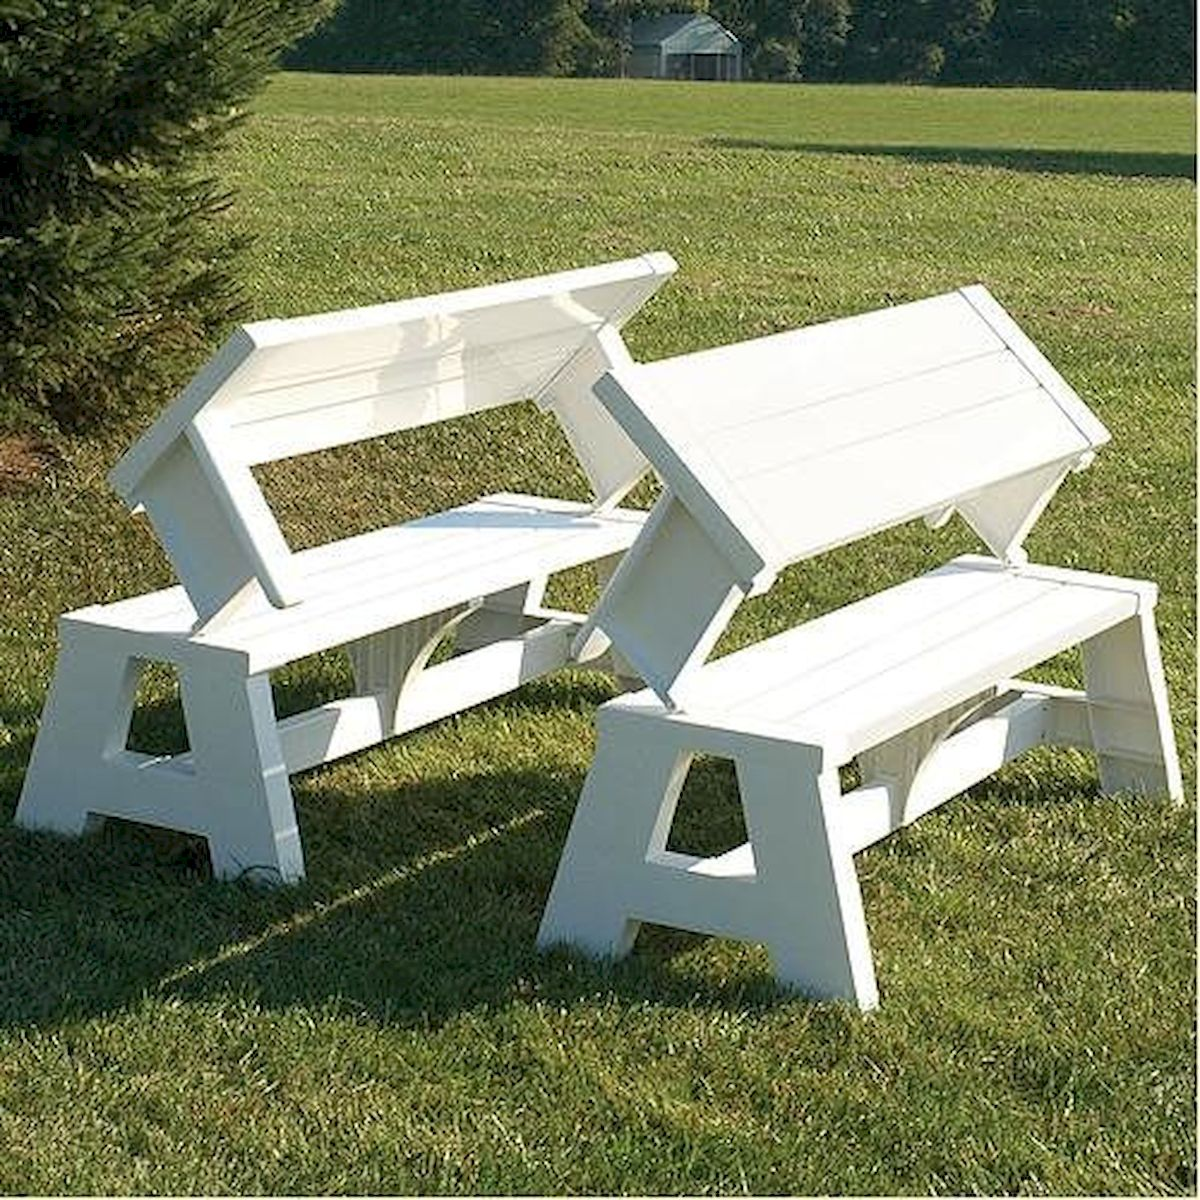 40 Awesome DIY Outdoor Bench Ideas For Backyard and Front Yard Garden (27)